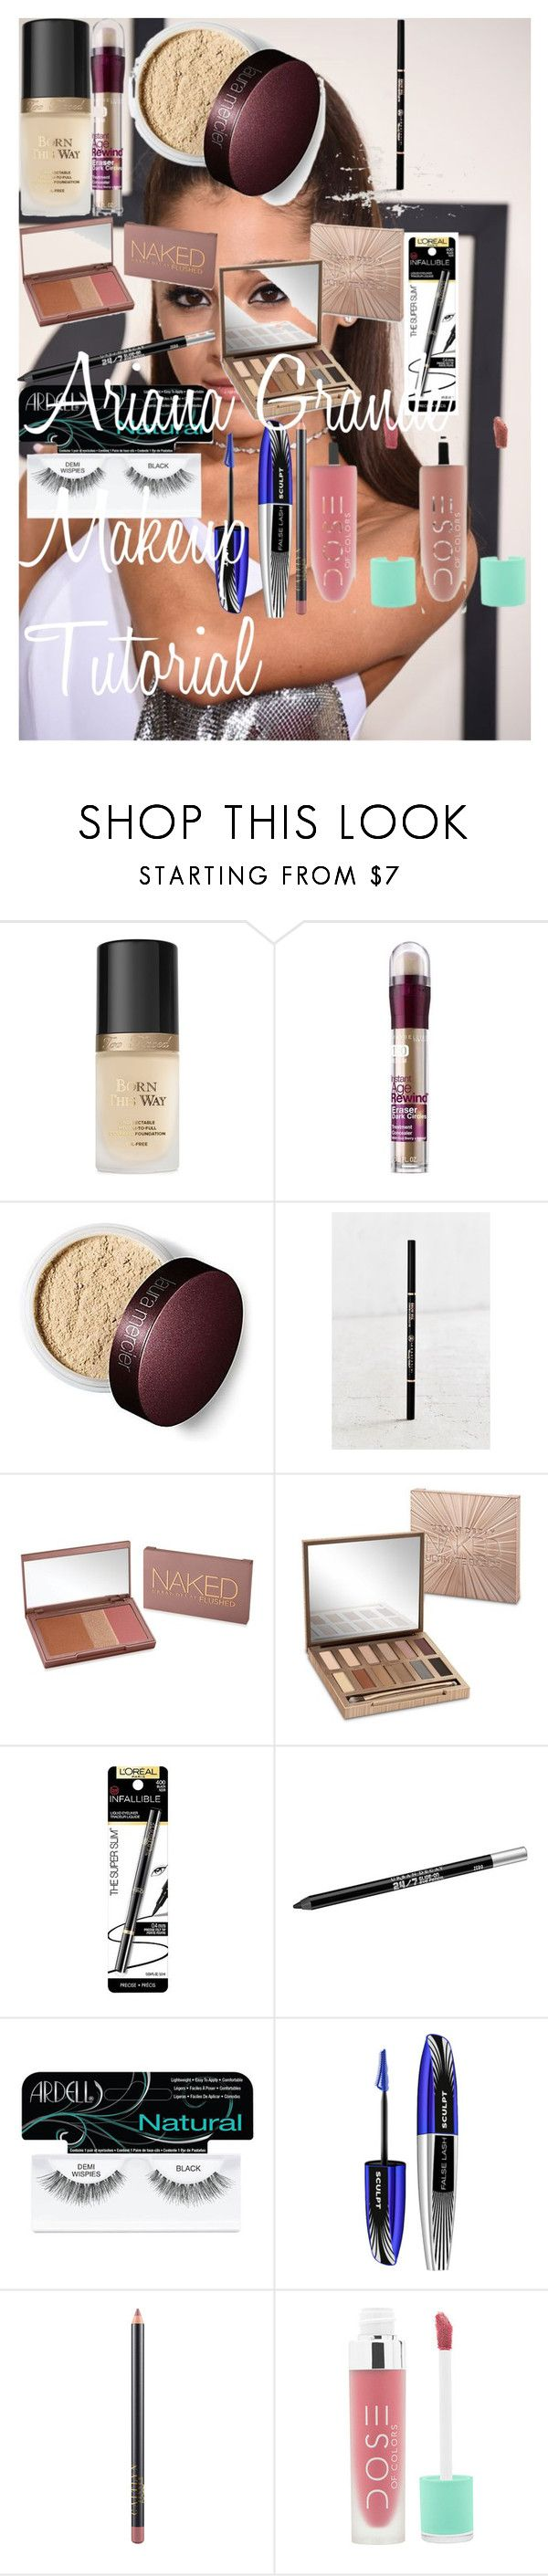 """""""Ariana Grande Makeup Tutorial"""" by oroartye-1 on Polyvore featuring beauty, Too Faced Cosmetics, Maybelline, Anastasia Beverly Hills, Urban Decay, L'Oréal Paris, Ardell and MAC Cosmetics"""